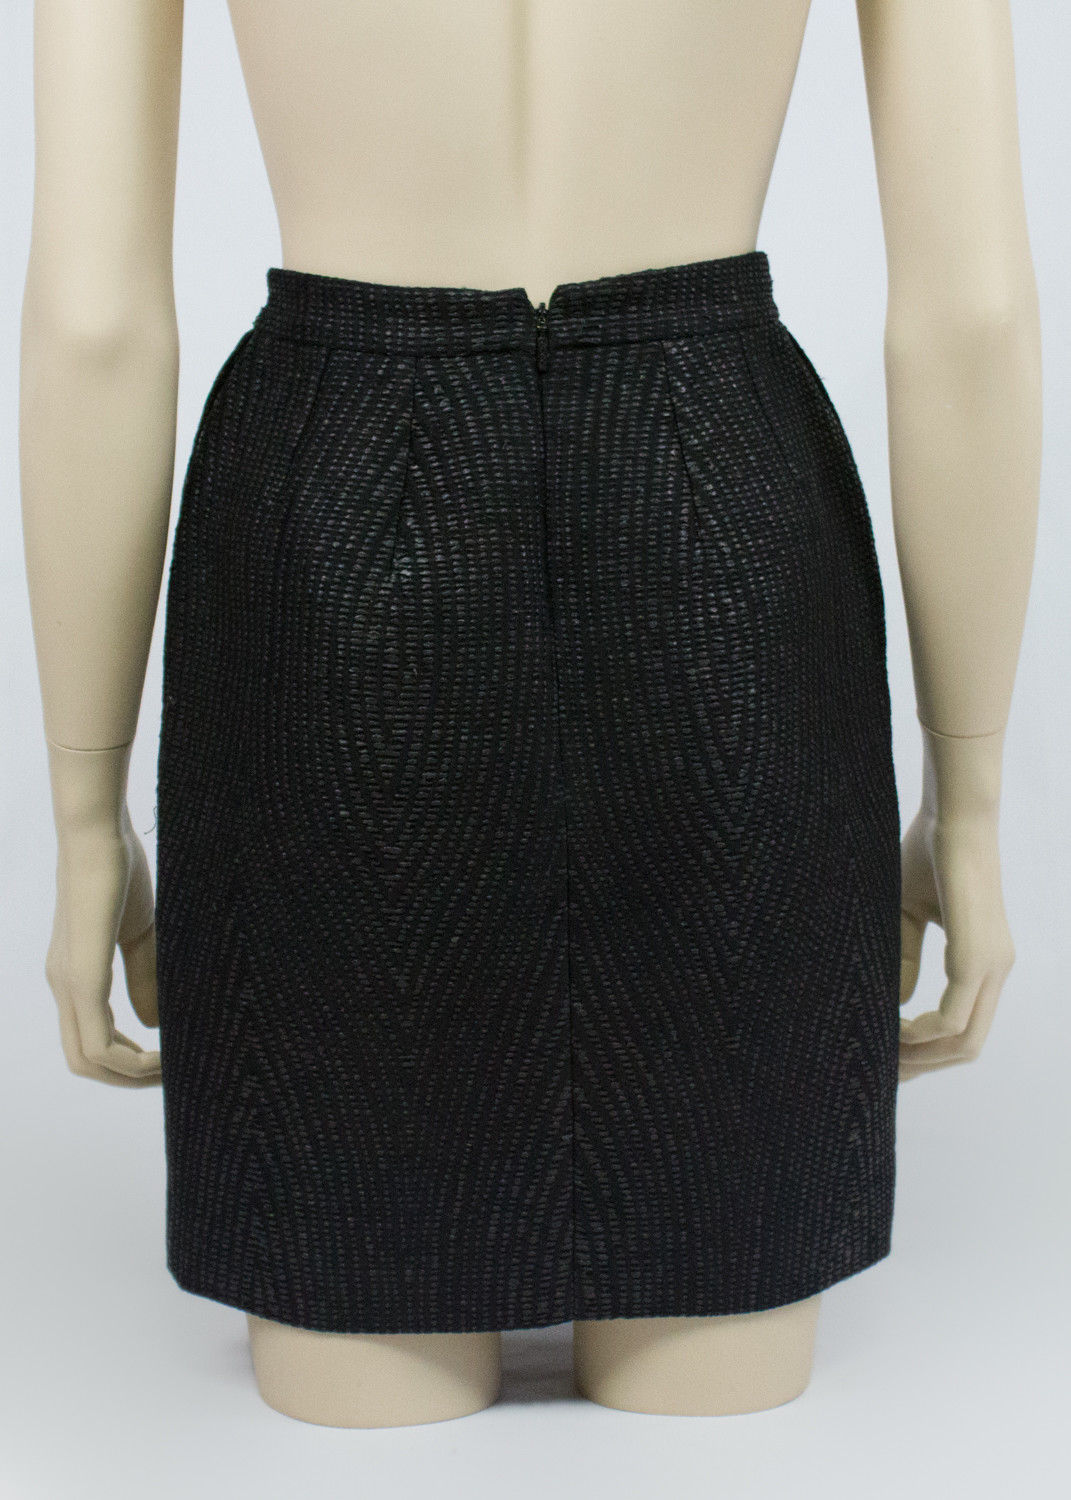 GUCCI Mini Black Textured Fabric Skirt, IT 36, US 0, UK 4, EU 32 - secondfirst